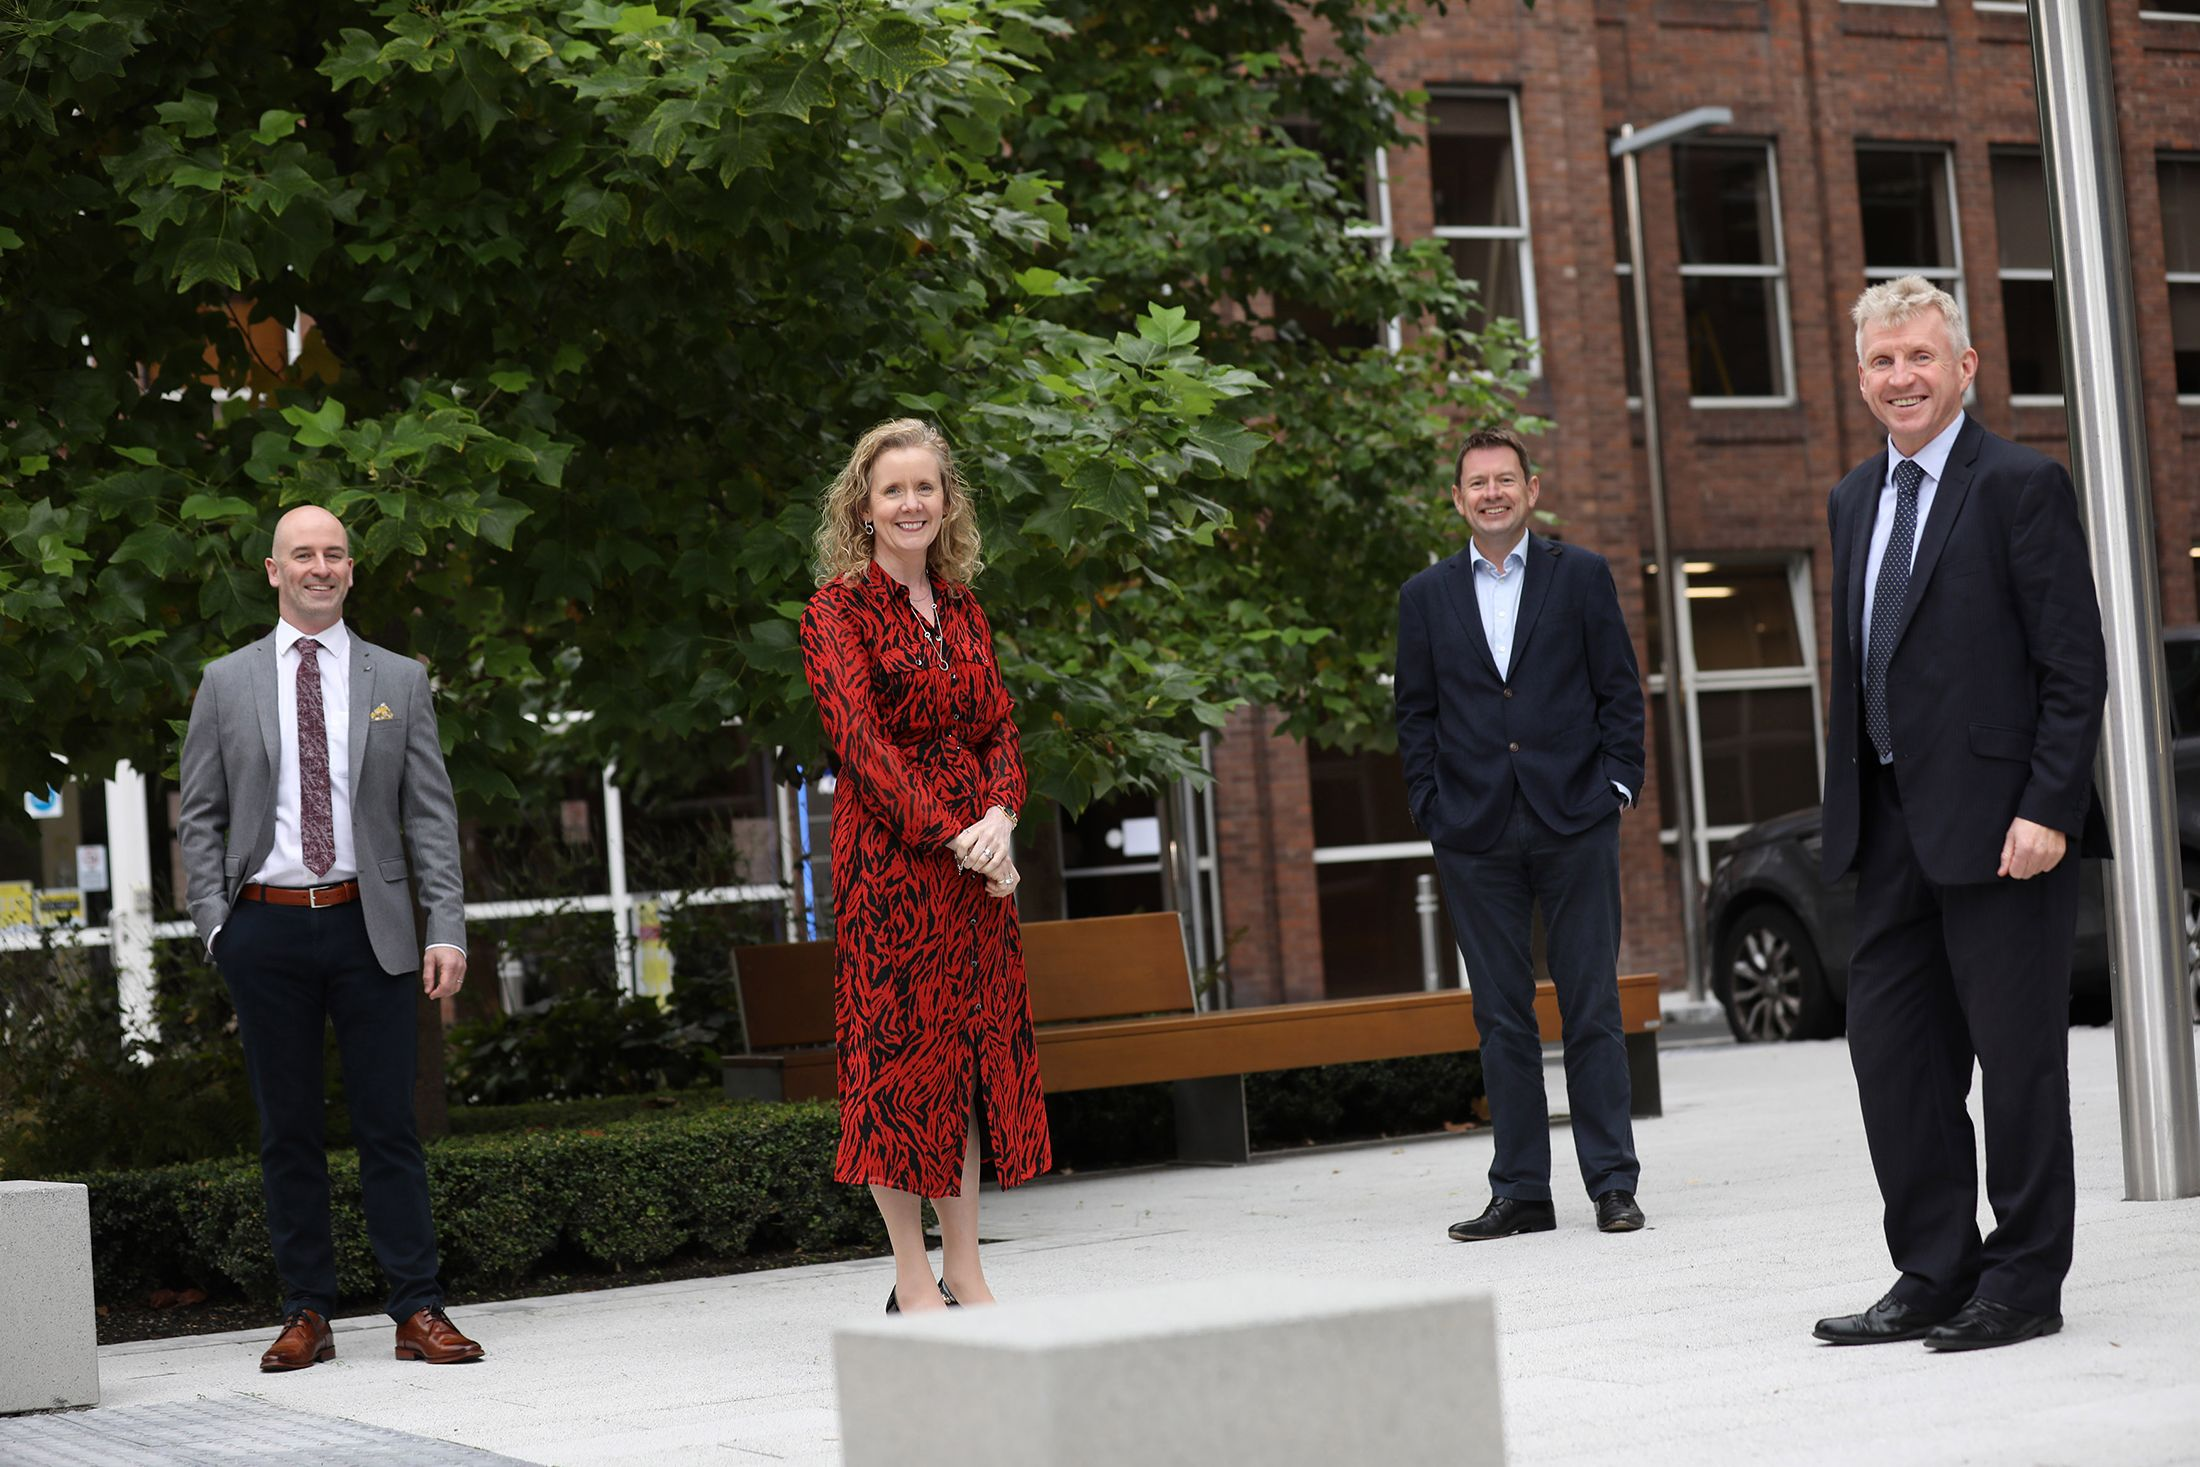 Pictured at the announcement of KPMG's acquisition of Future Analytics Consulting were (L to R) Stephen Purcell, Founder, Future Analytics Consulting; Michele Connolly, Partner, KPMG; Seamus Hand, Managing Partner, KPMG; and Professor William Hynes, Founder, Future Analytics Consulting.